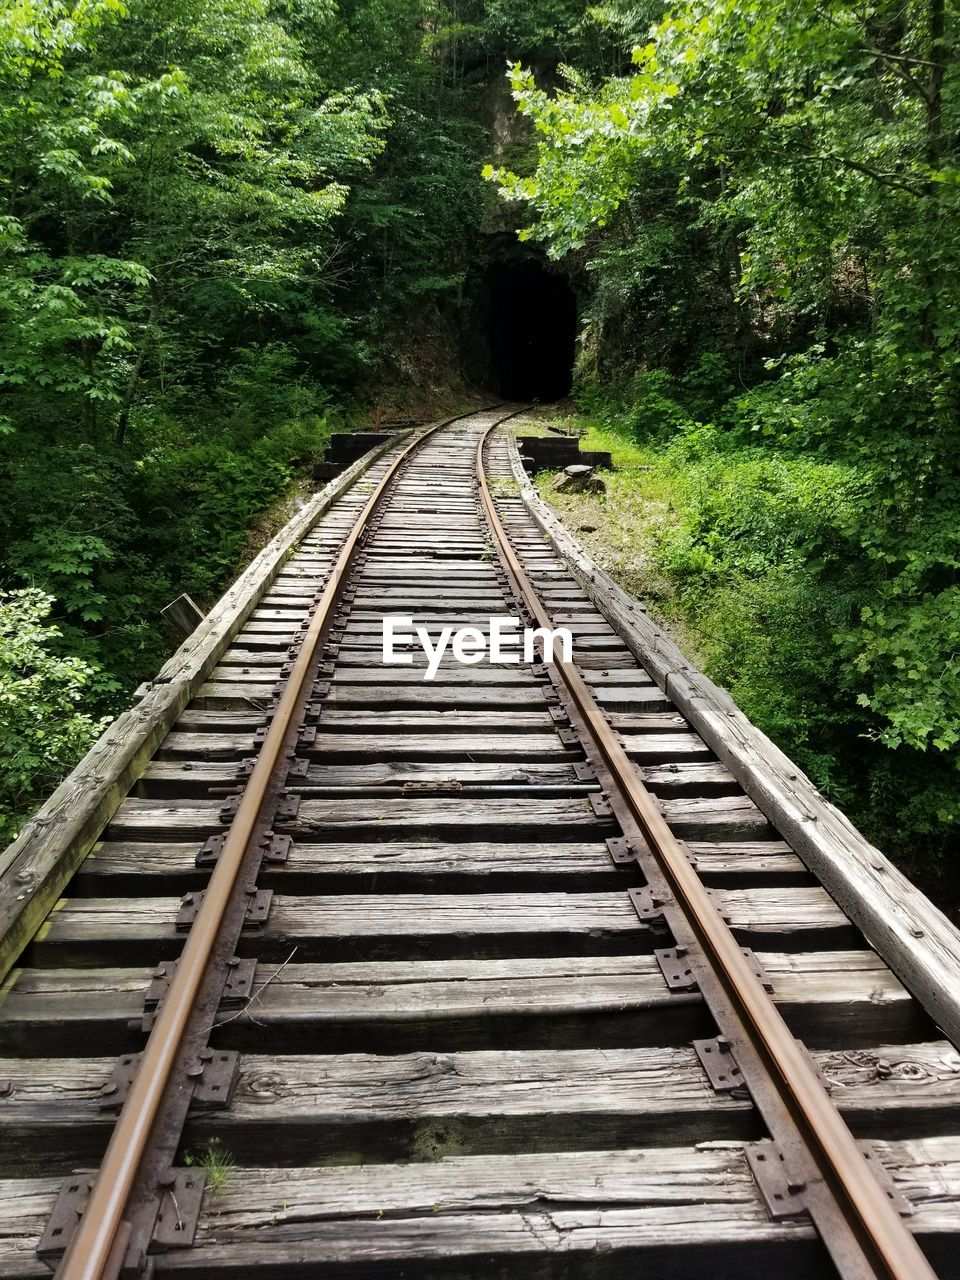 rail transportation, track, railroad track, tree, transportation, direction, plant, the way forward, forest, no people, connection, day, land, nature, metal, diminishing perspective, green color, outdoors, growth, vanishing point, parallel